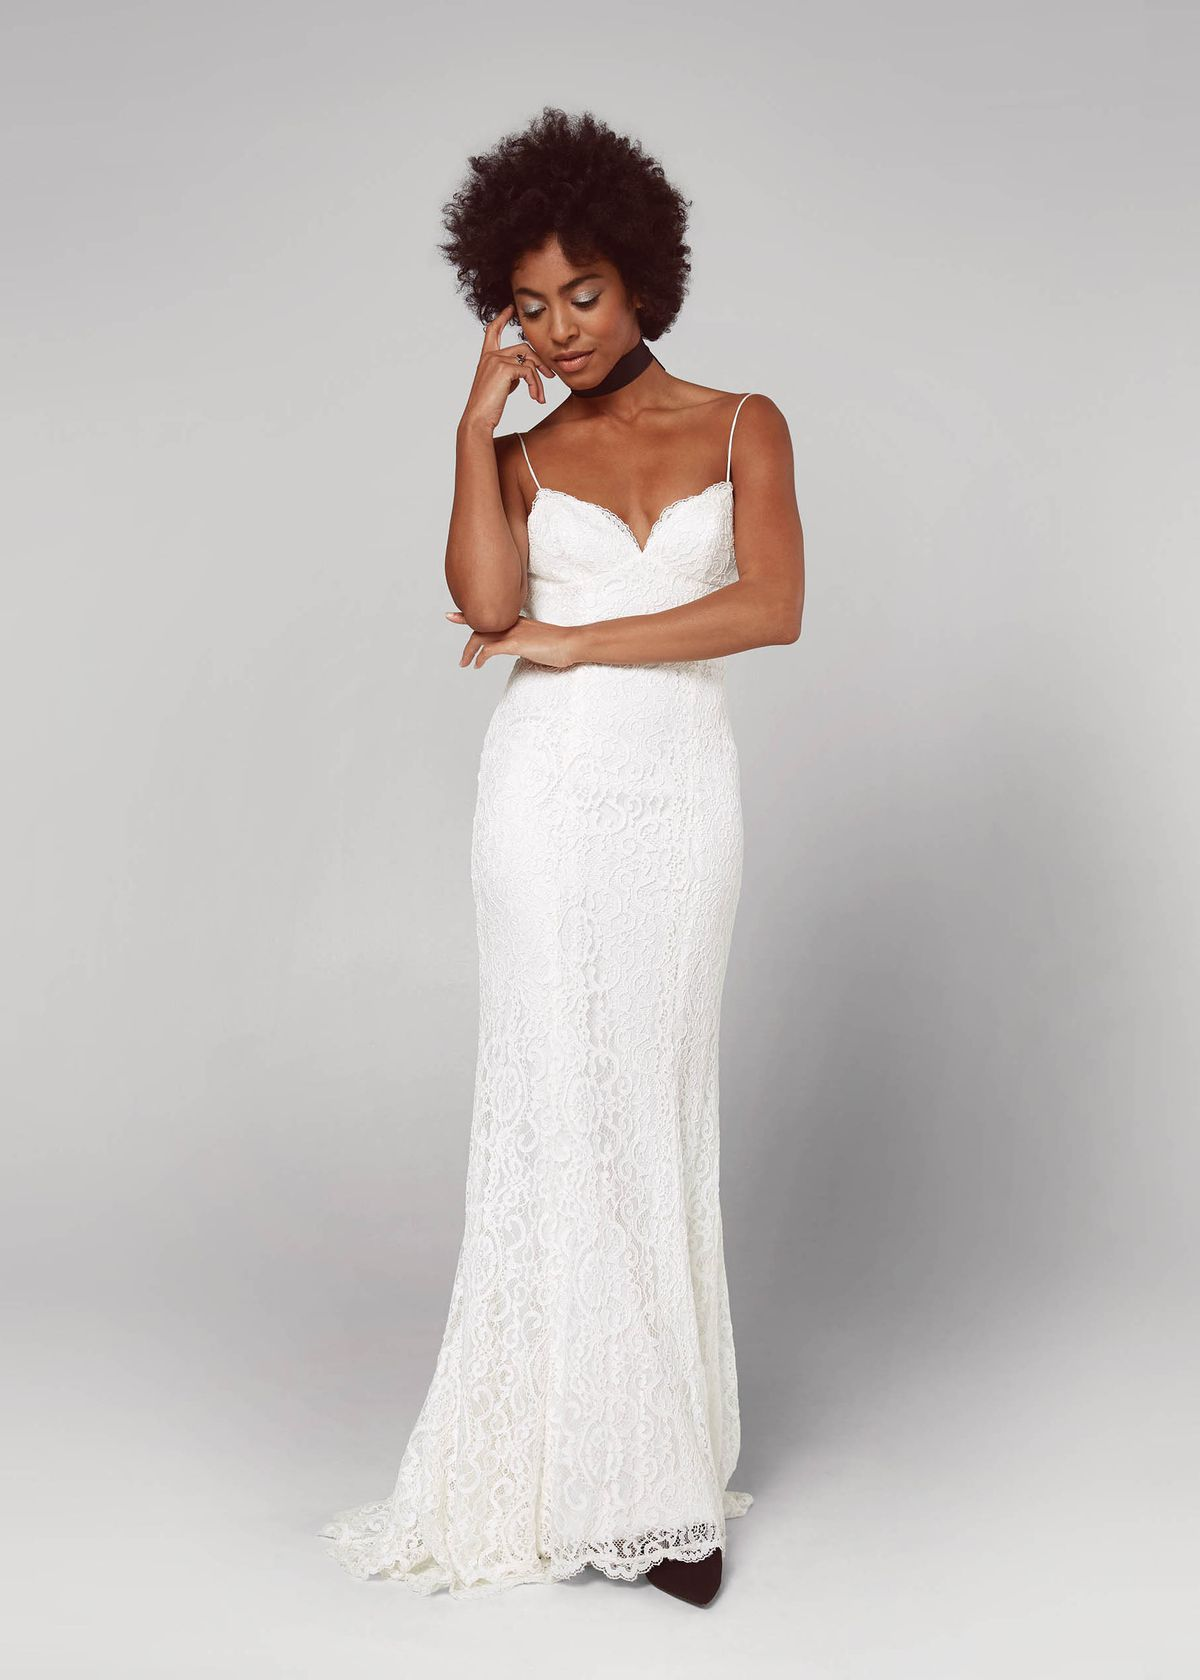 410d7cd27 Where to Buy Affordable Wedding Dresses - Vox